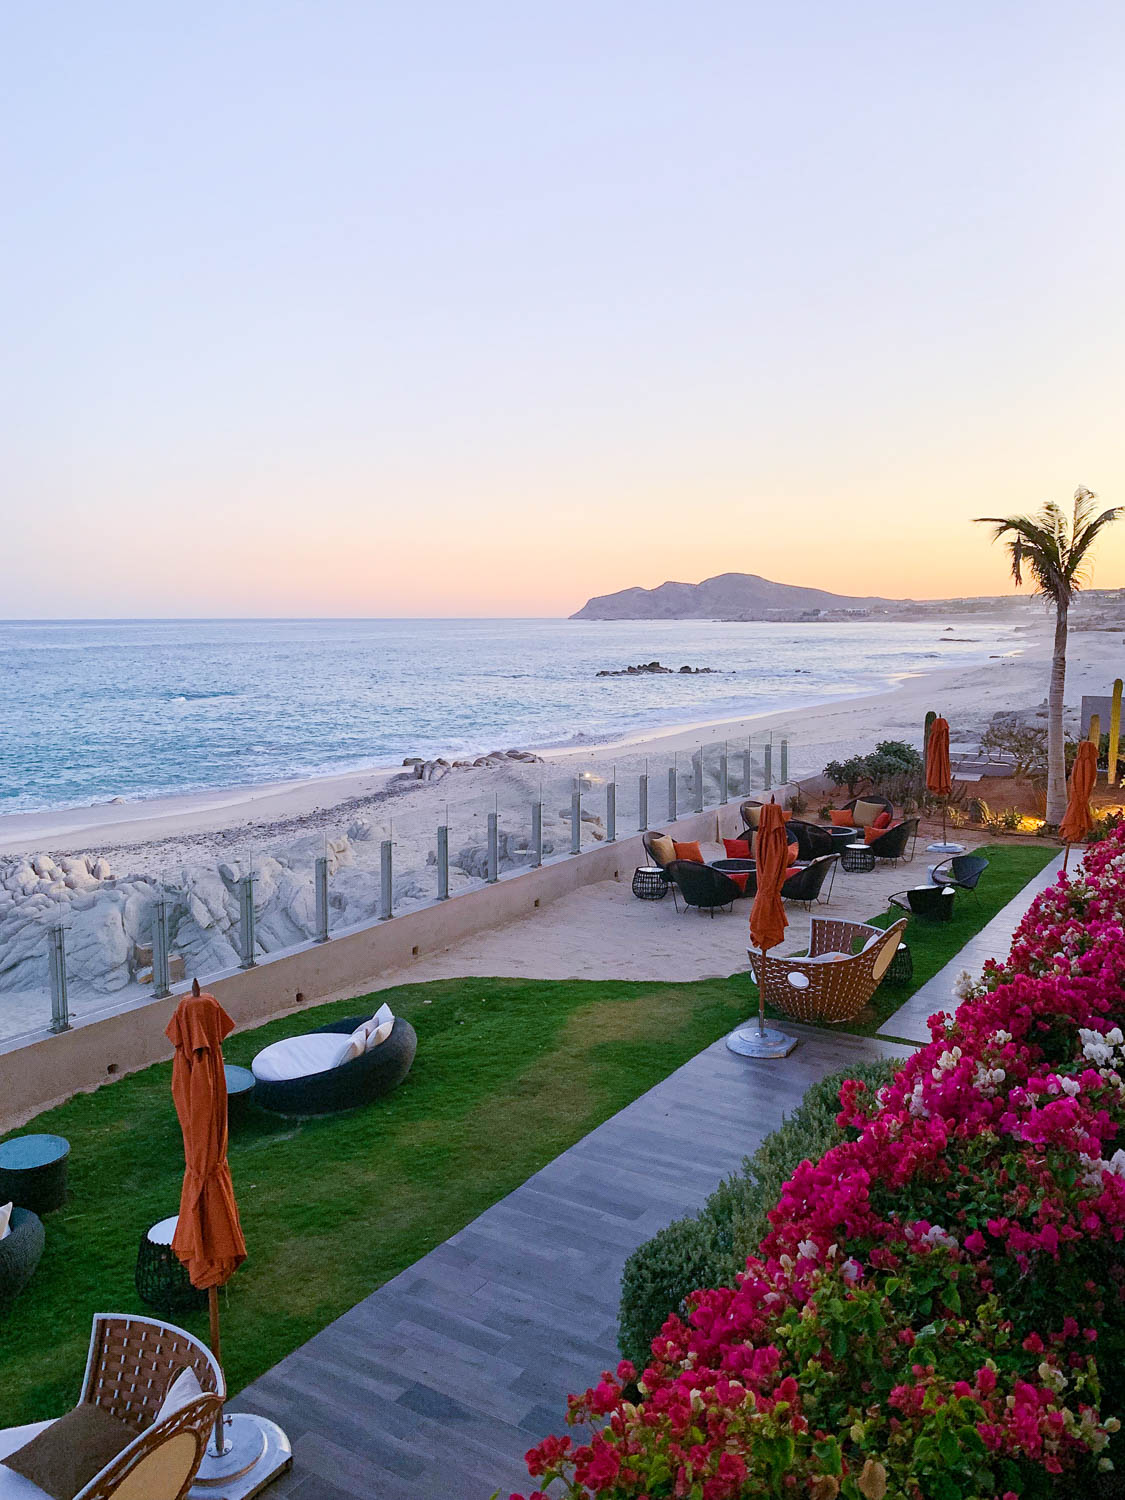 Best All-Inclusive Resort - Cabo All Inclusive Resort - Cabo Resort-11.jpg